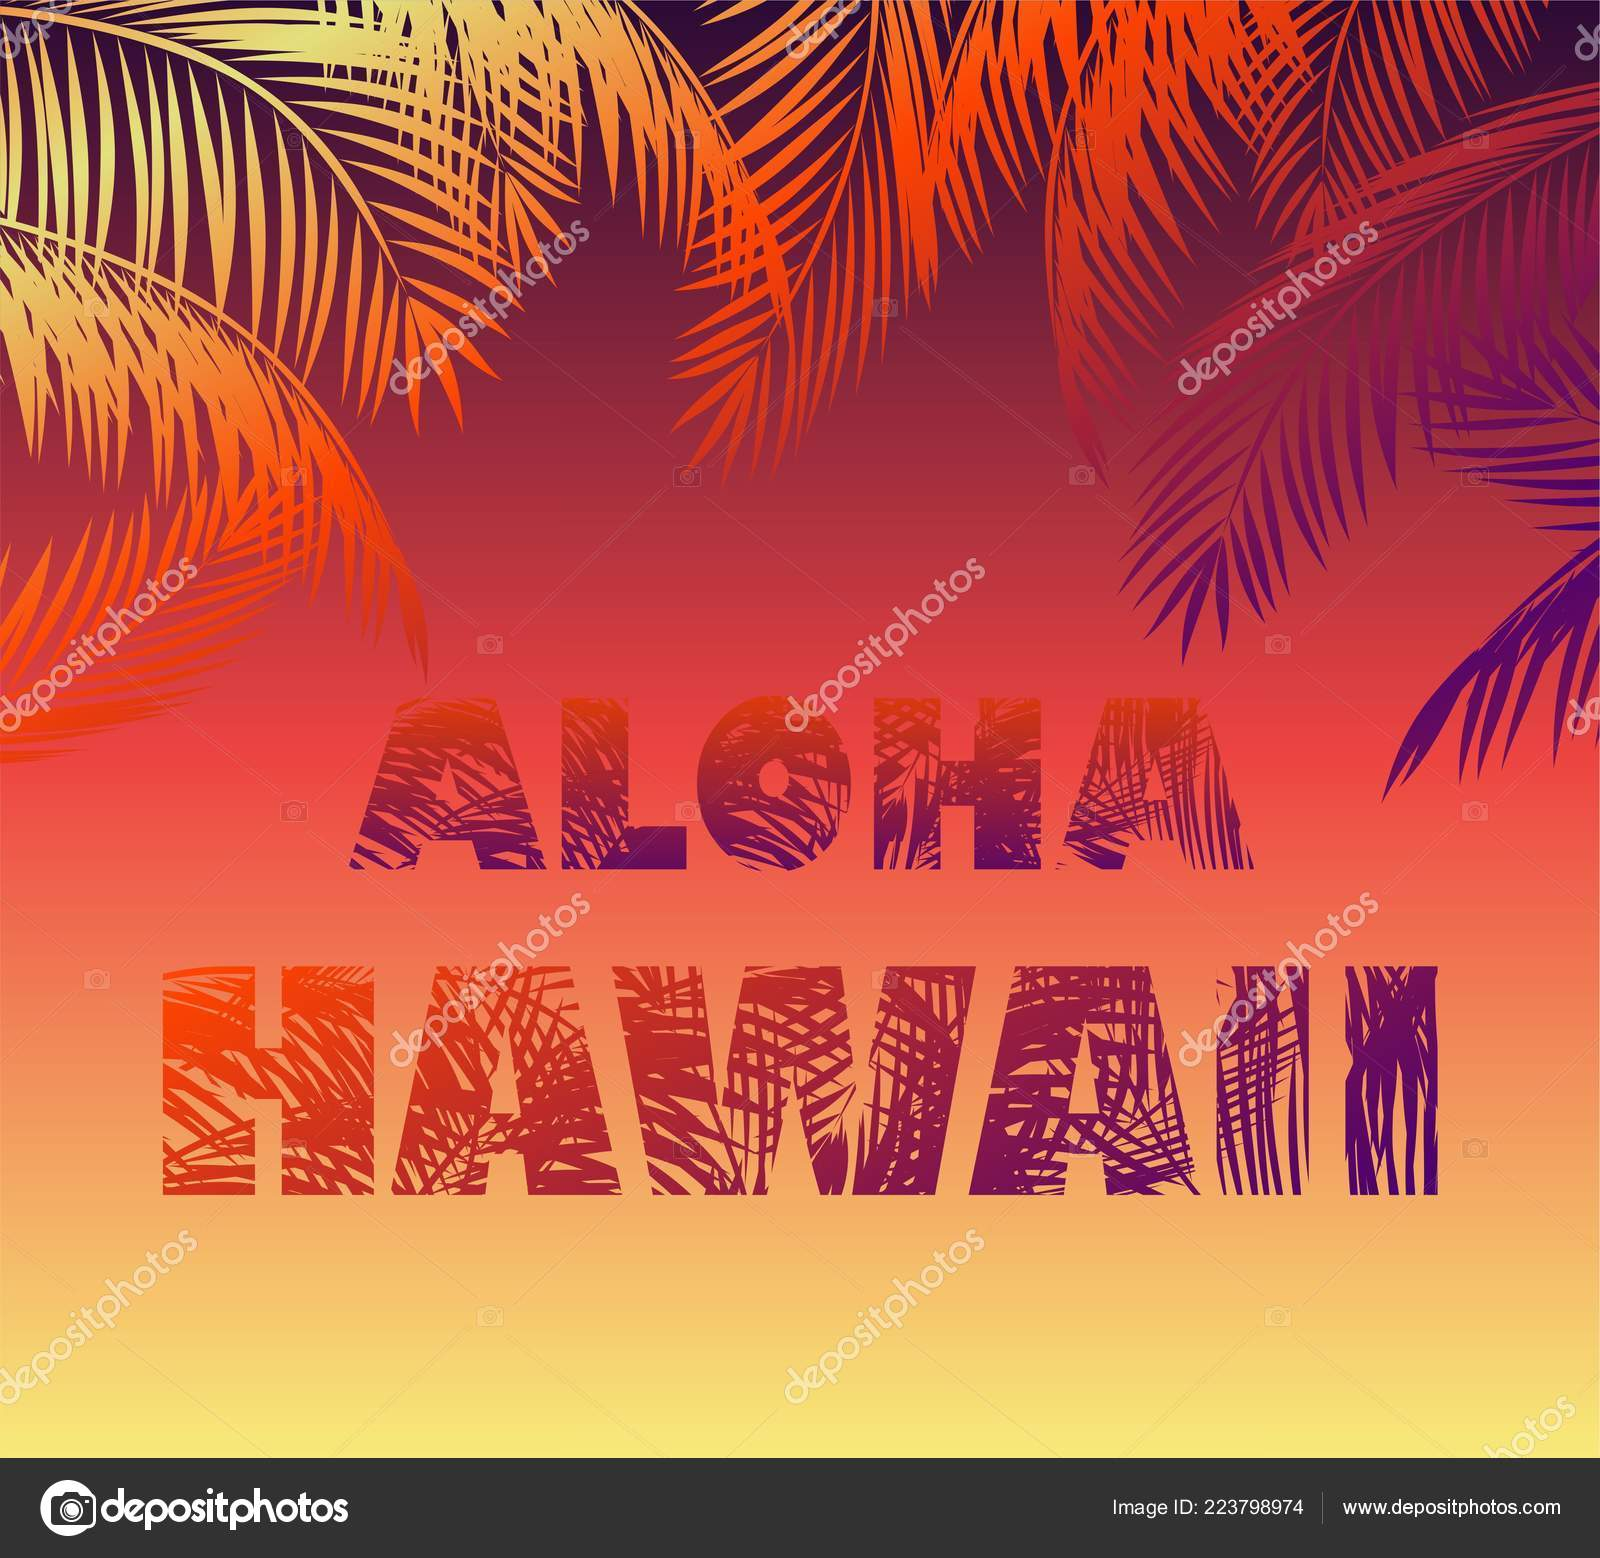 Tropical Neon Background Floral Aloha Hawaii Lettering Palm Leaves Silhouettes Stock Vector